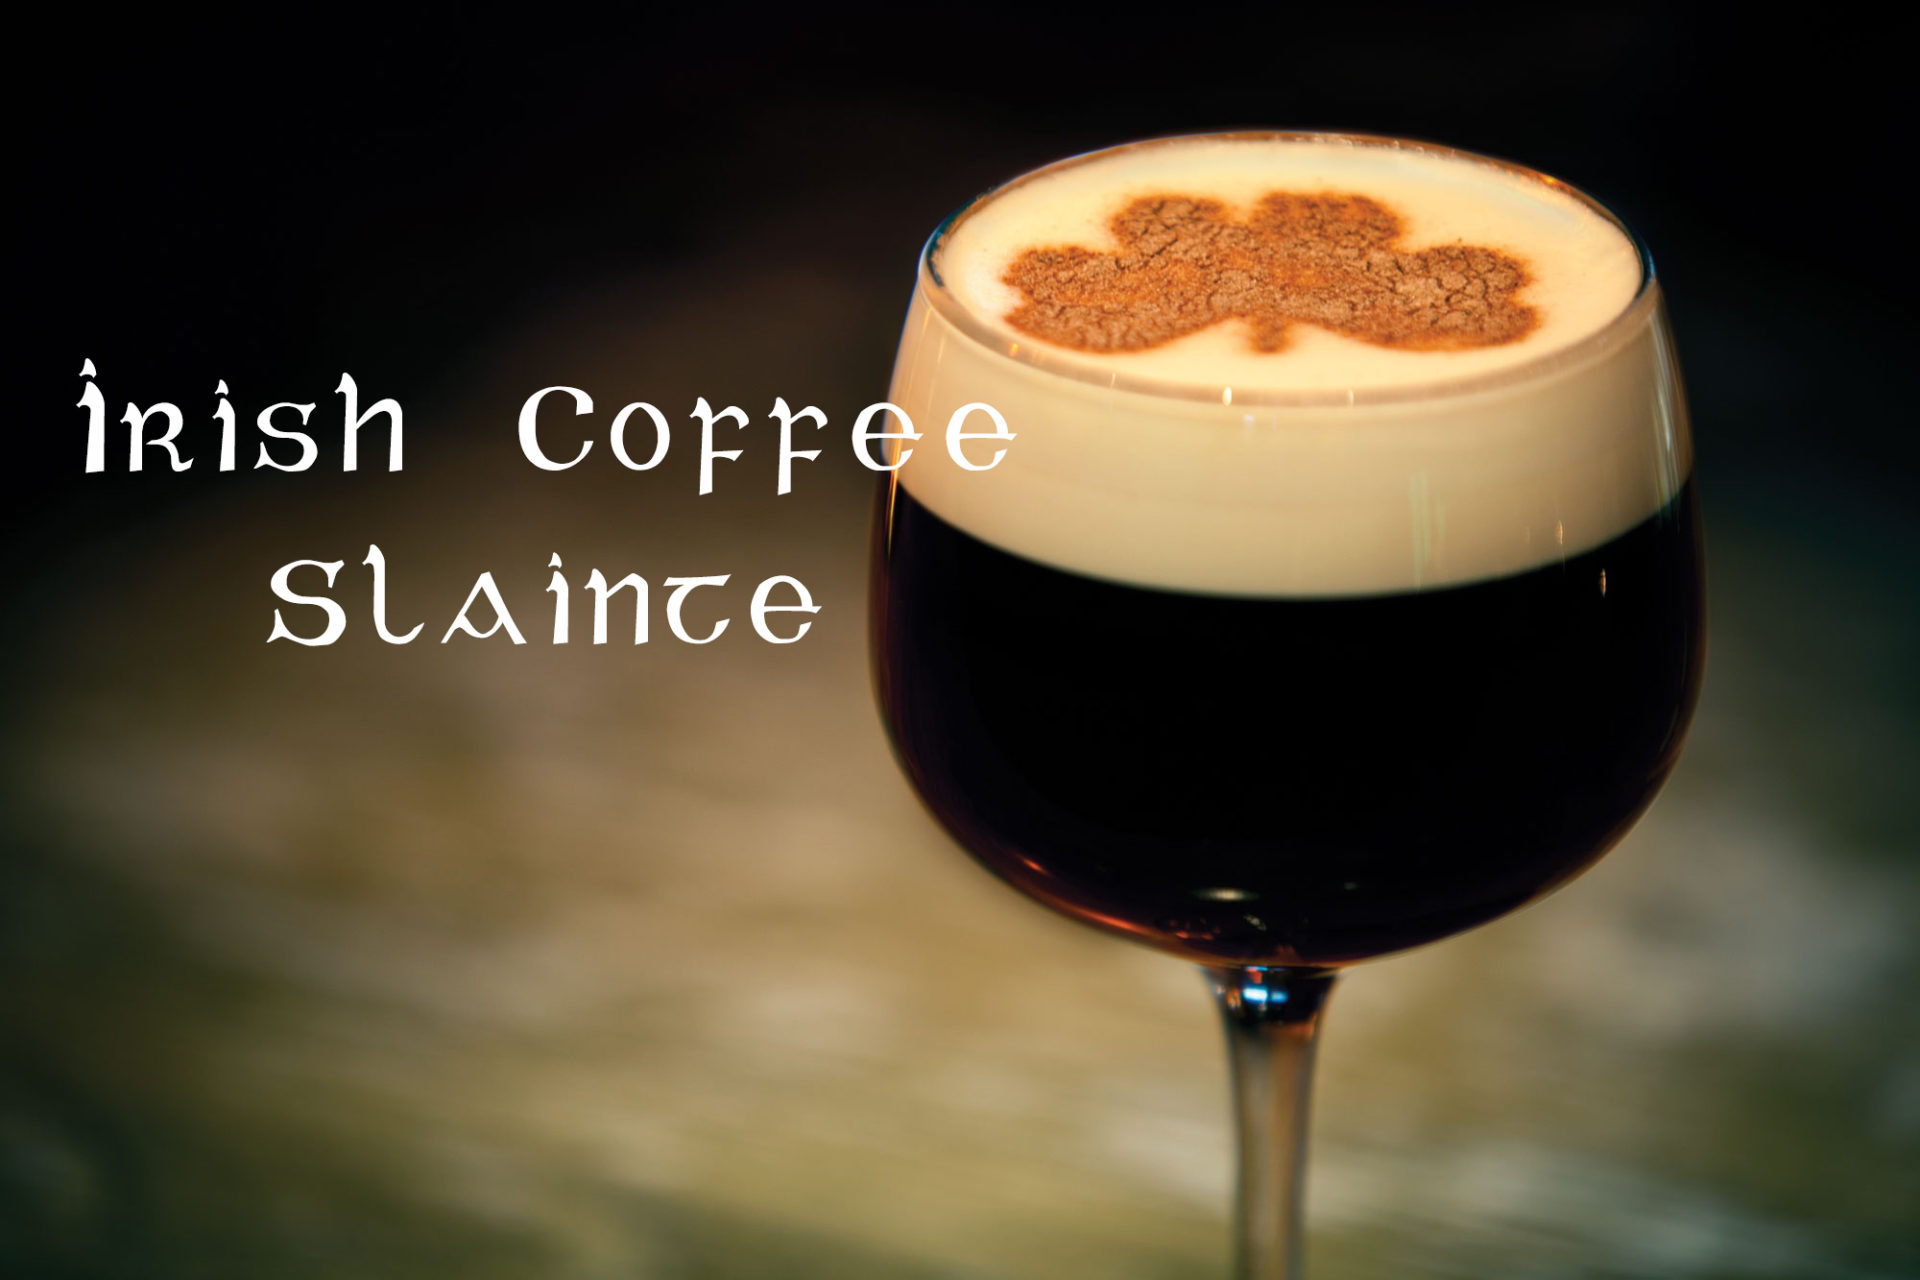 Irish Coffee, bevanda irlandese a base di caffè